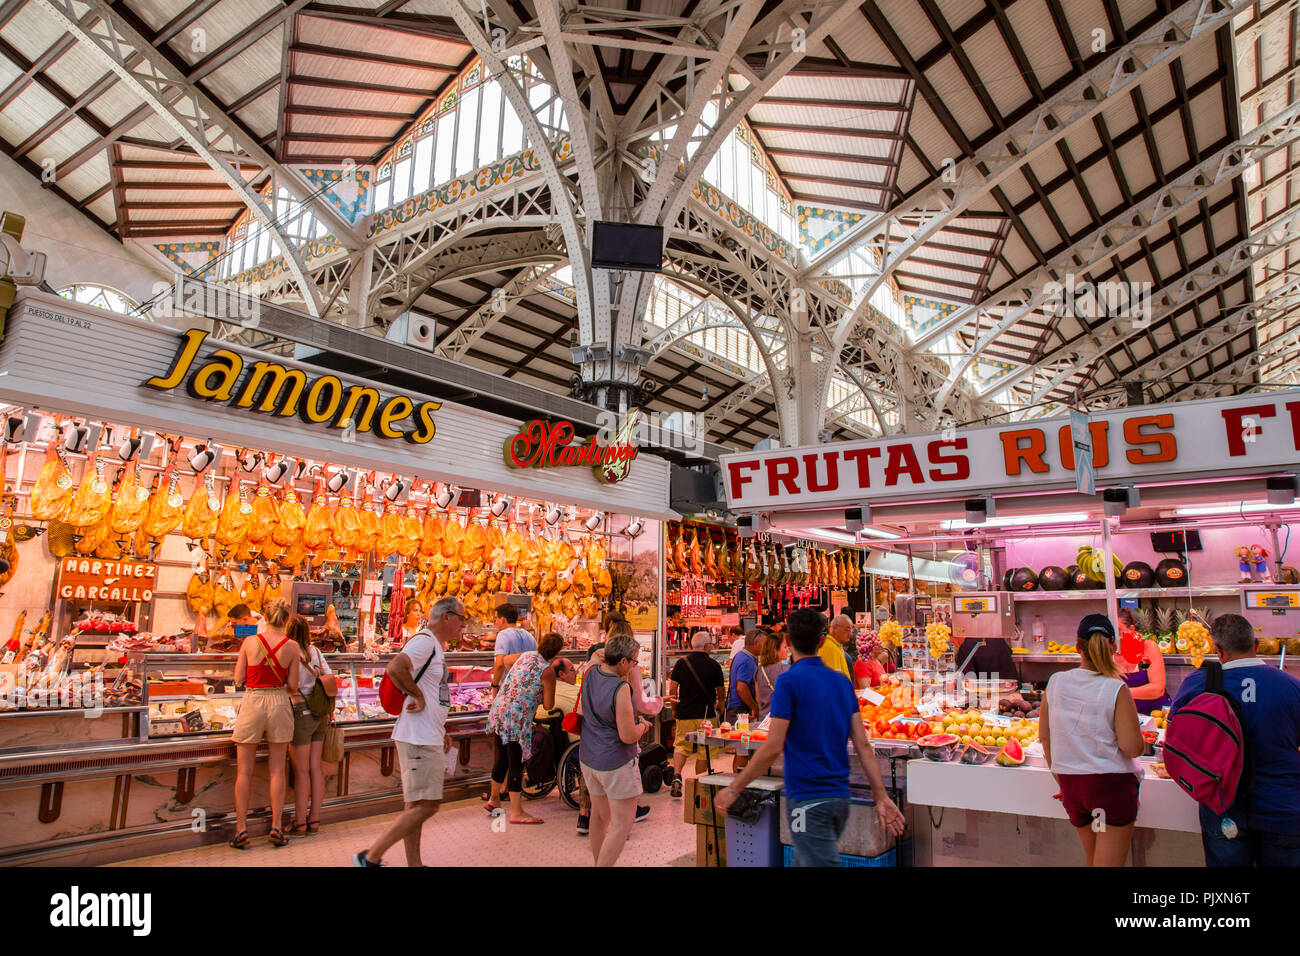 Mercat Central, the central market in Valencia city, Spain - Stock Image